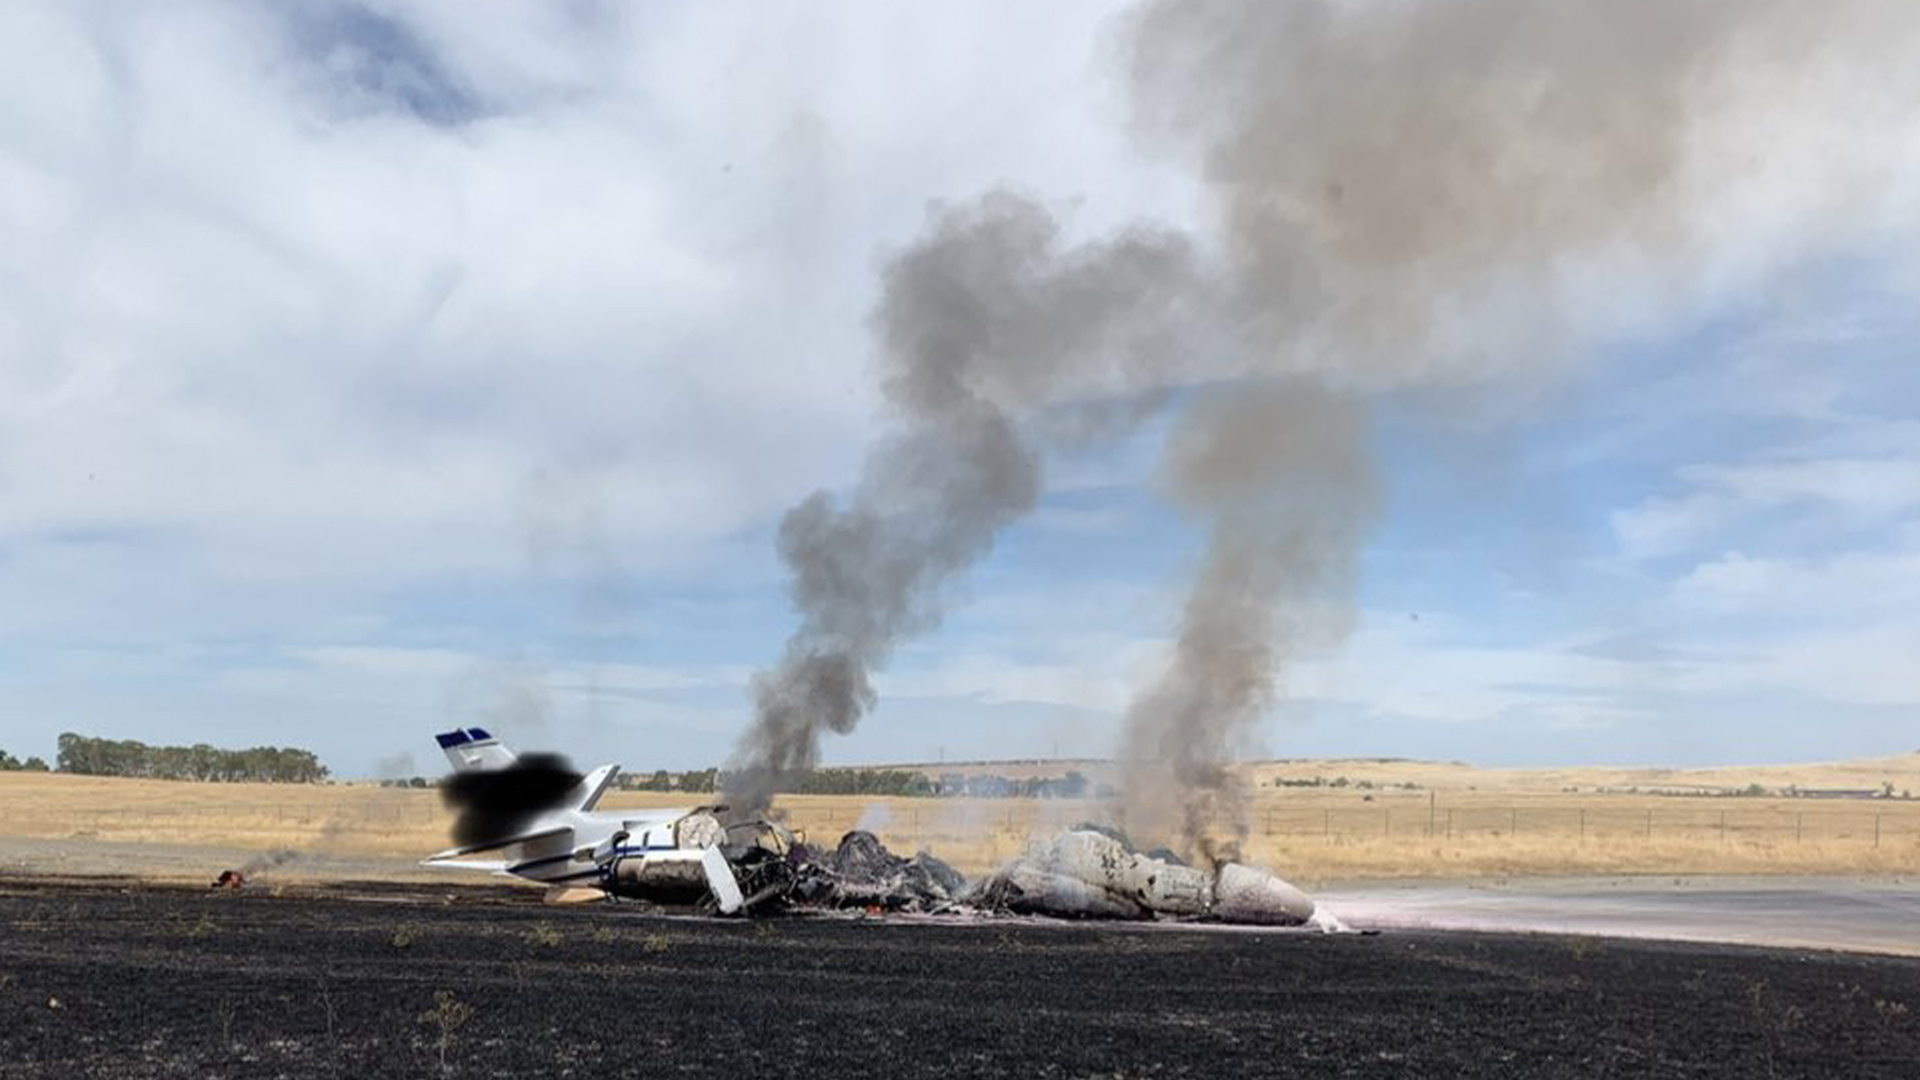 The scene where a jet burst into flames after aborting a takeoff in Oroville on Aug. 21, 2019, is seen in a photo released by the California Highway Patrol.